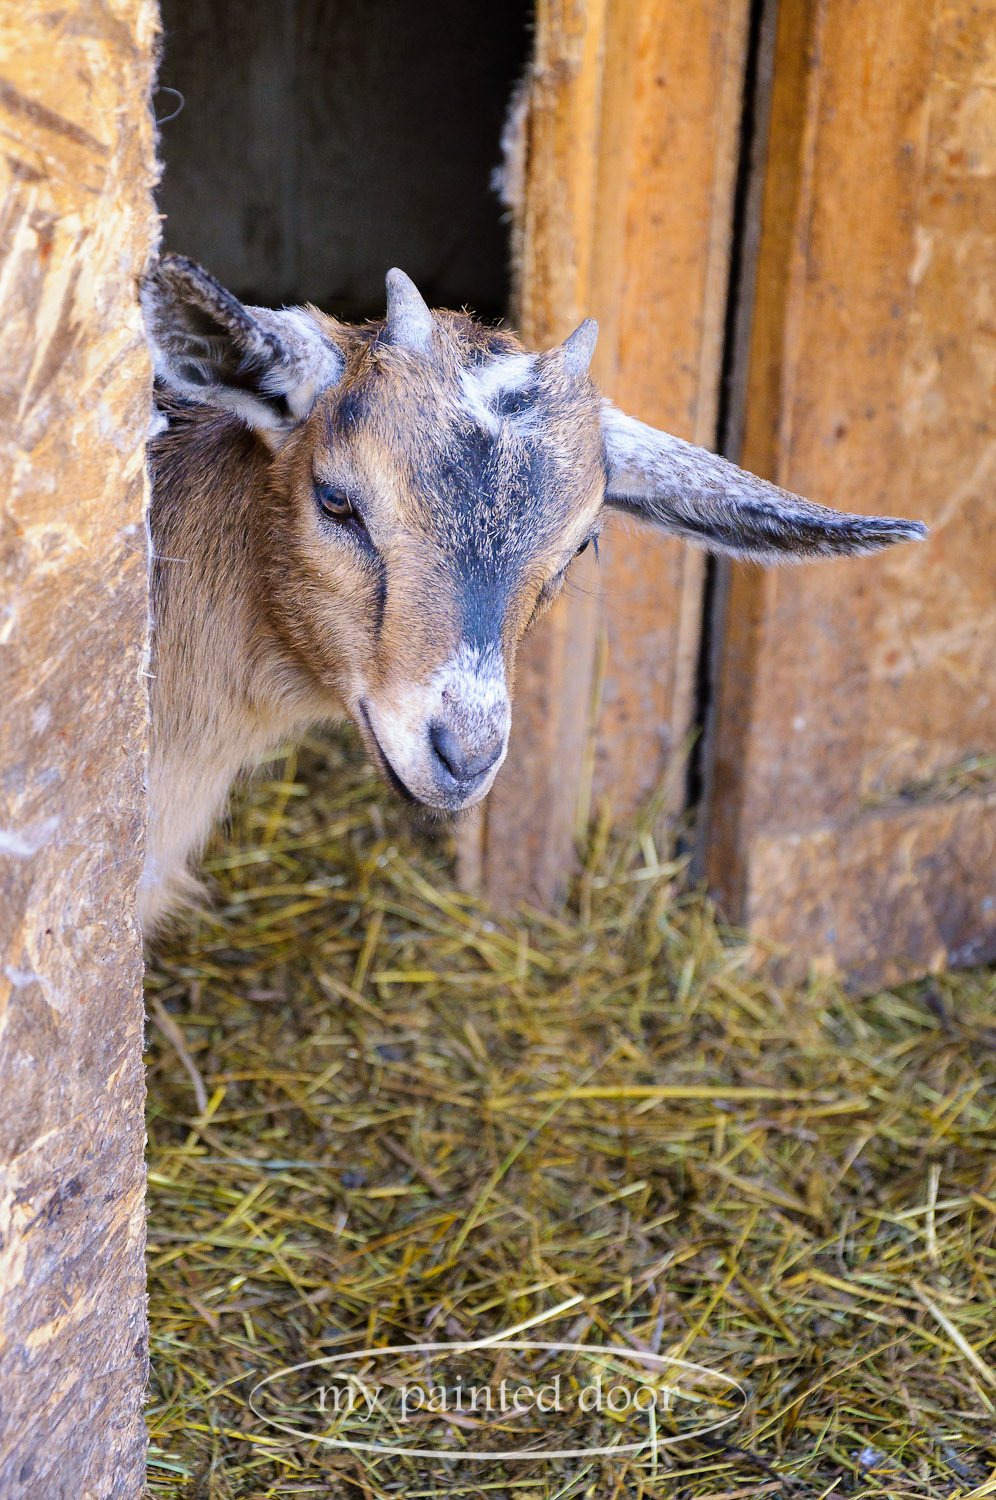 One of the many baby goats from Hurkett Hill Farm.